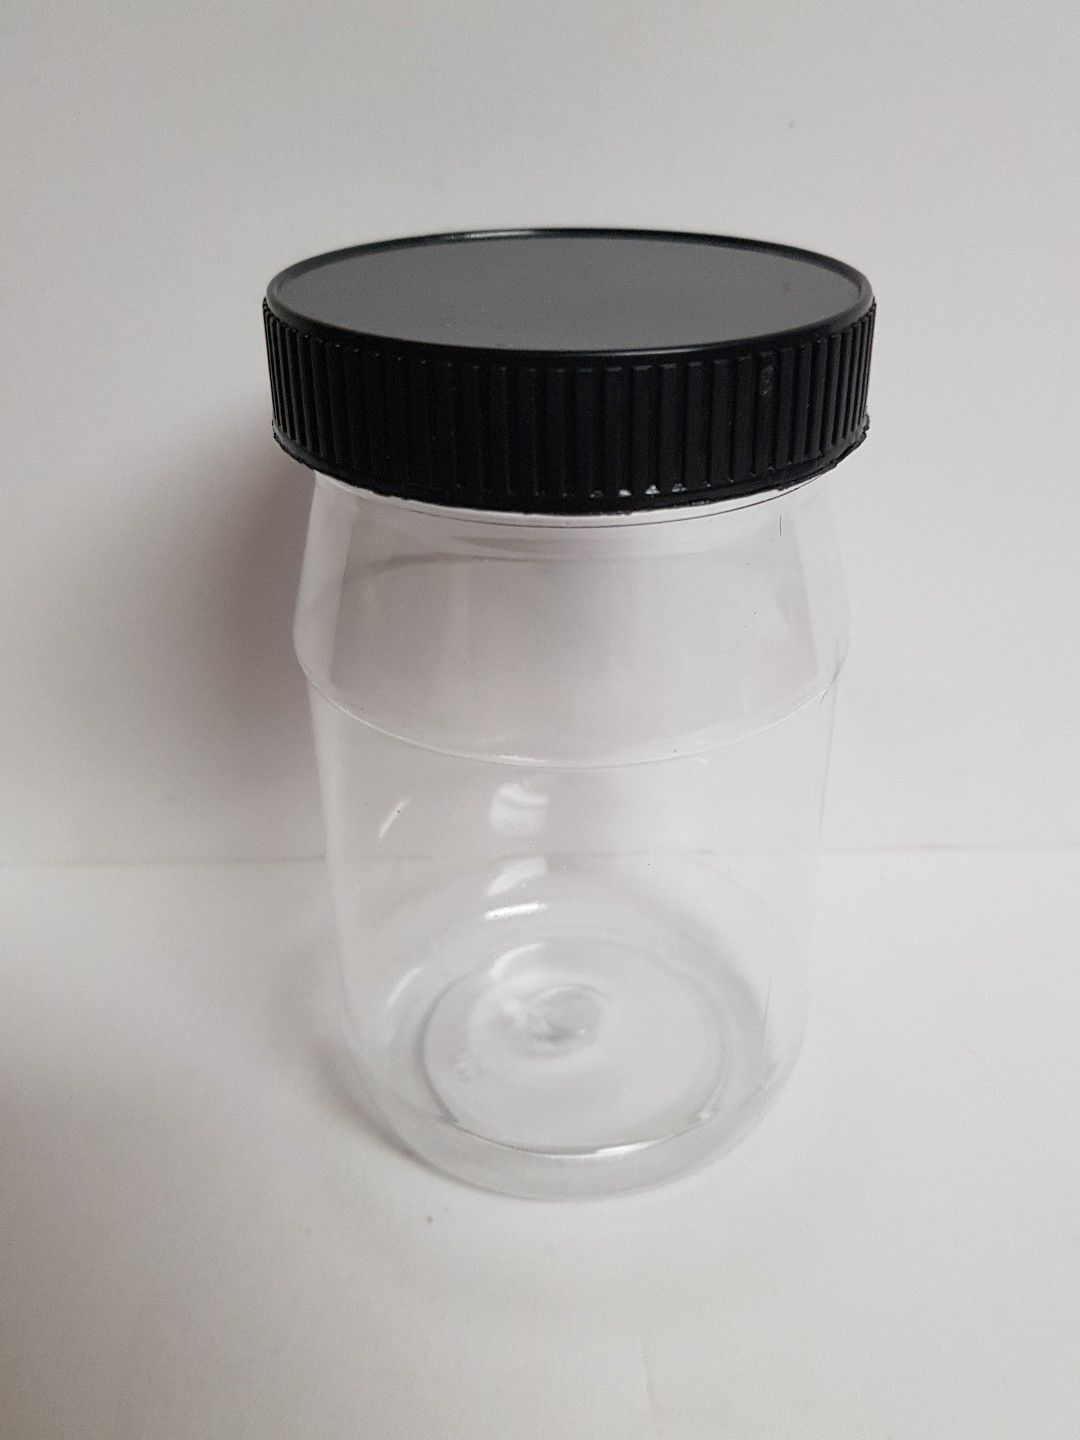 5 PLASTIC JAR WITH LIDS GREAT FOR CRAFTING STORAGE AND MORE